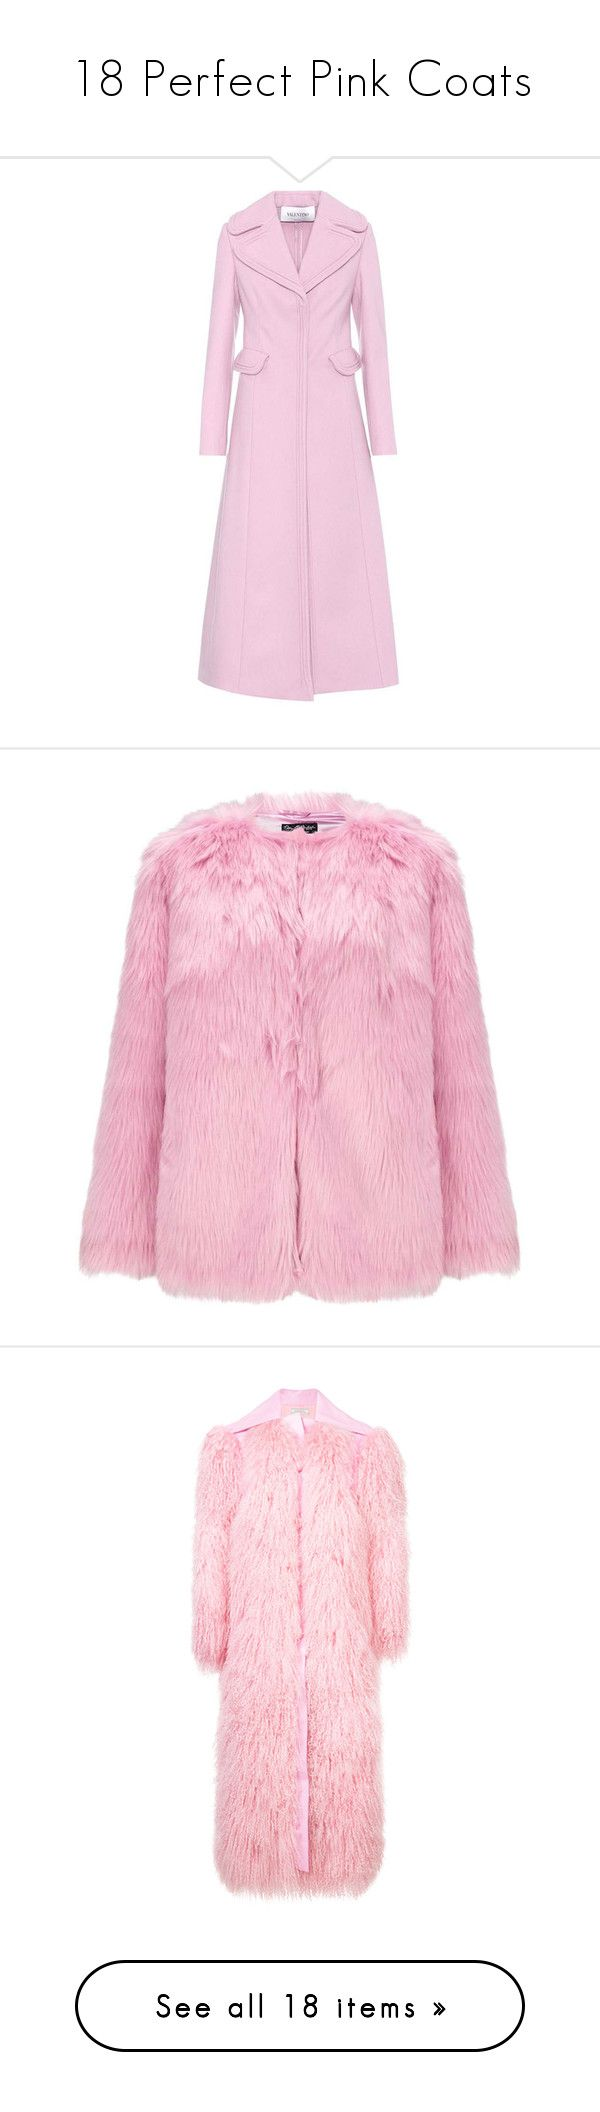 """""""18 Perfect Pink Coats"""" by polyvore-editorial ❤ liked on Polyvore featuring pinkcoats, outerwear, coats, jackets, pink, pink coat, wool blend coat, valentino coat, miss selfridge coats and pink fake fur coat"""